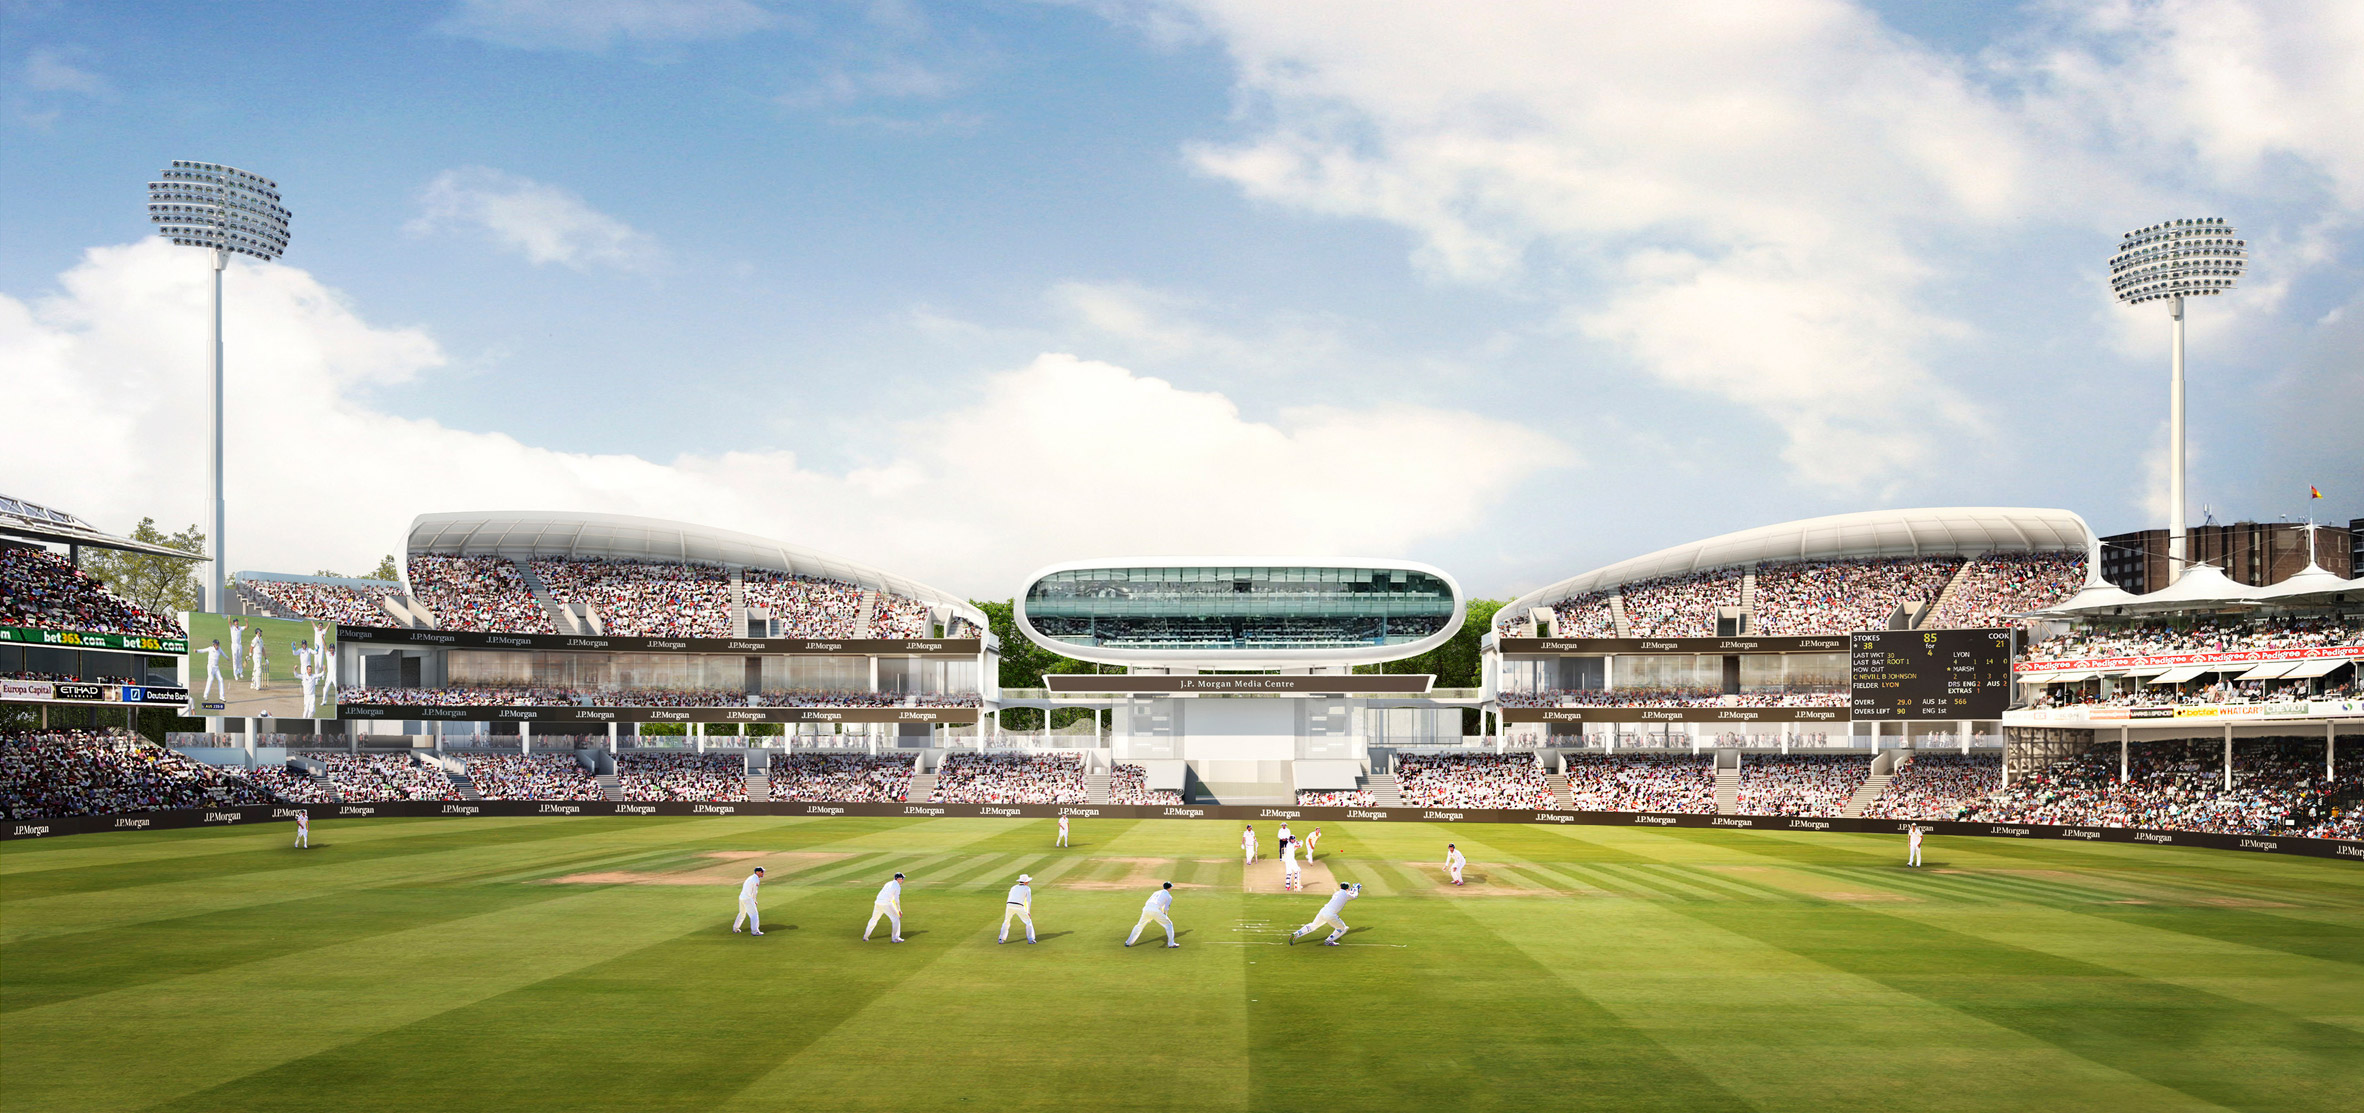 Wilkinsoneyre S Latest Designs For Lord S Cricket Ground Stands